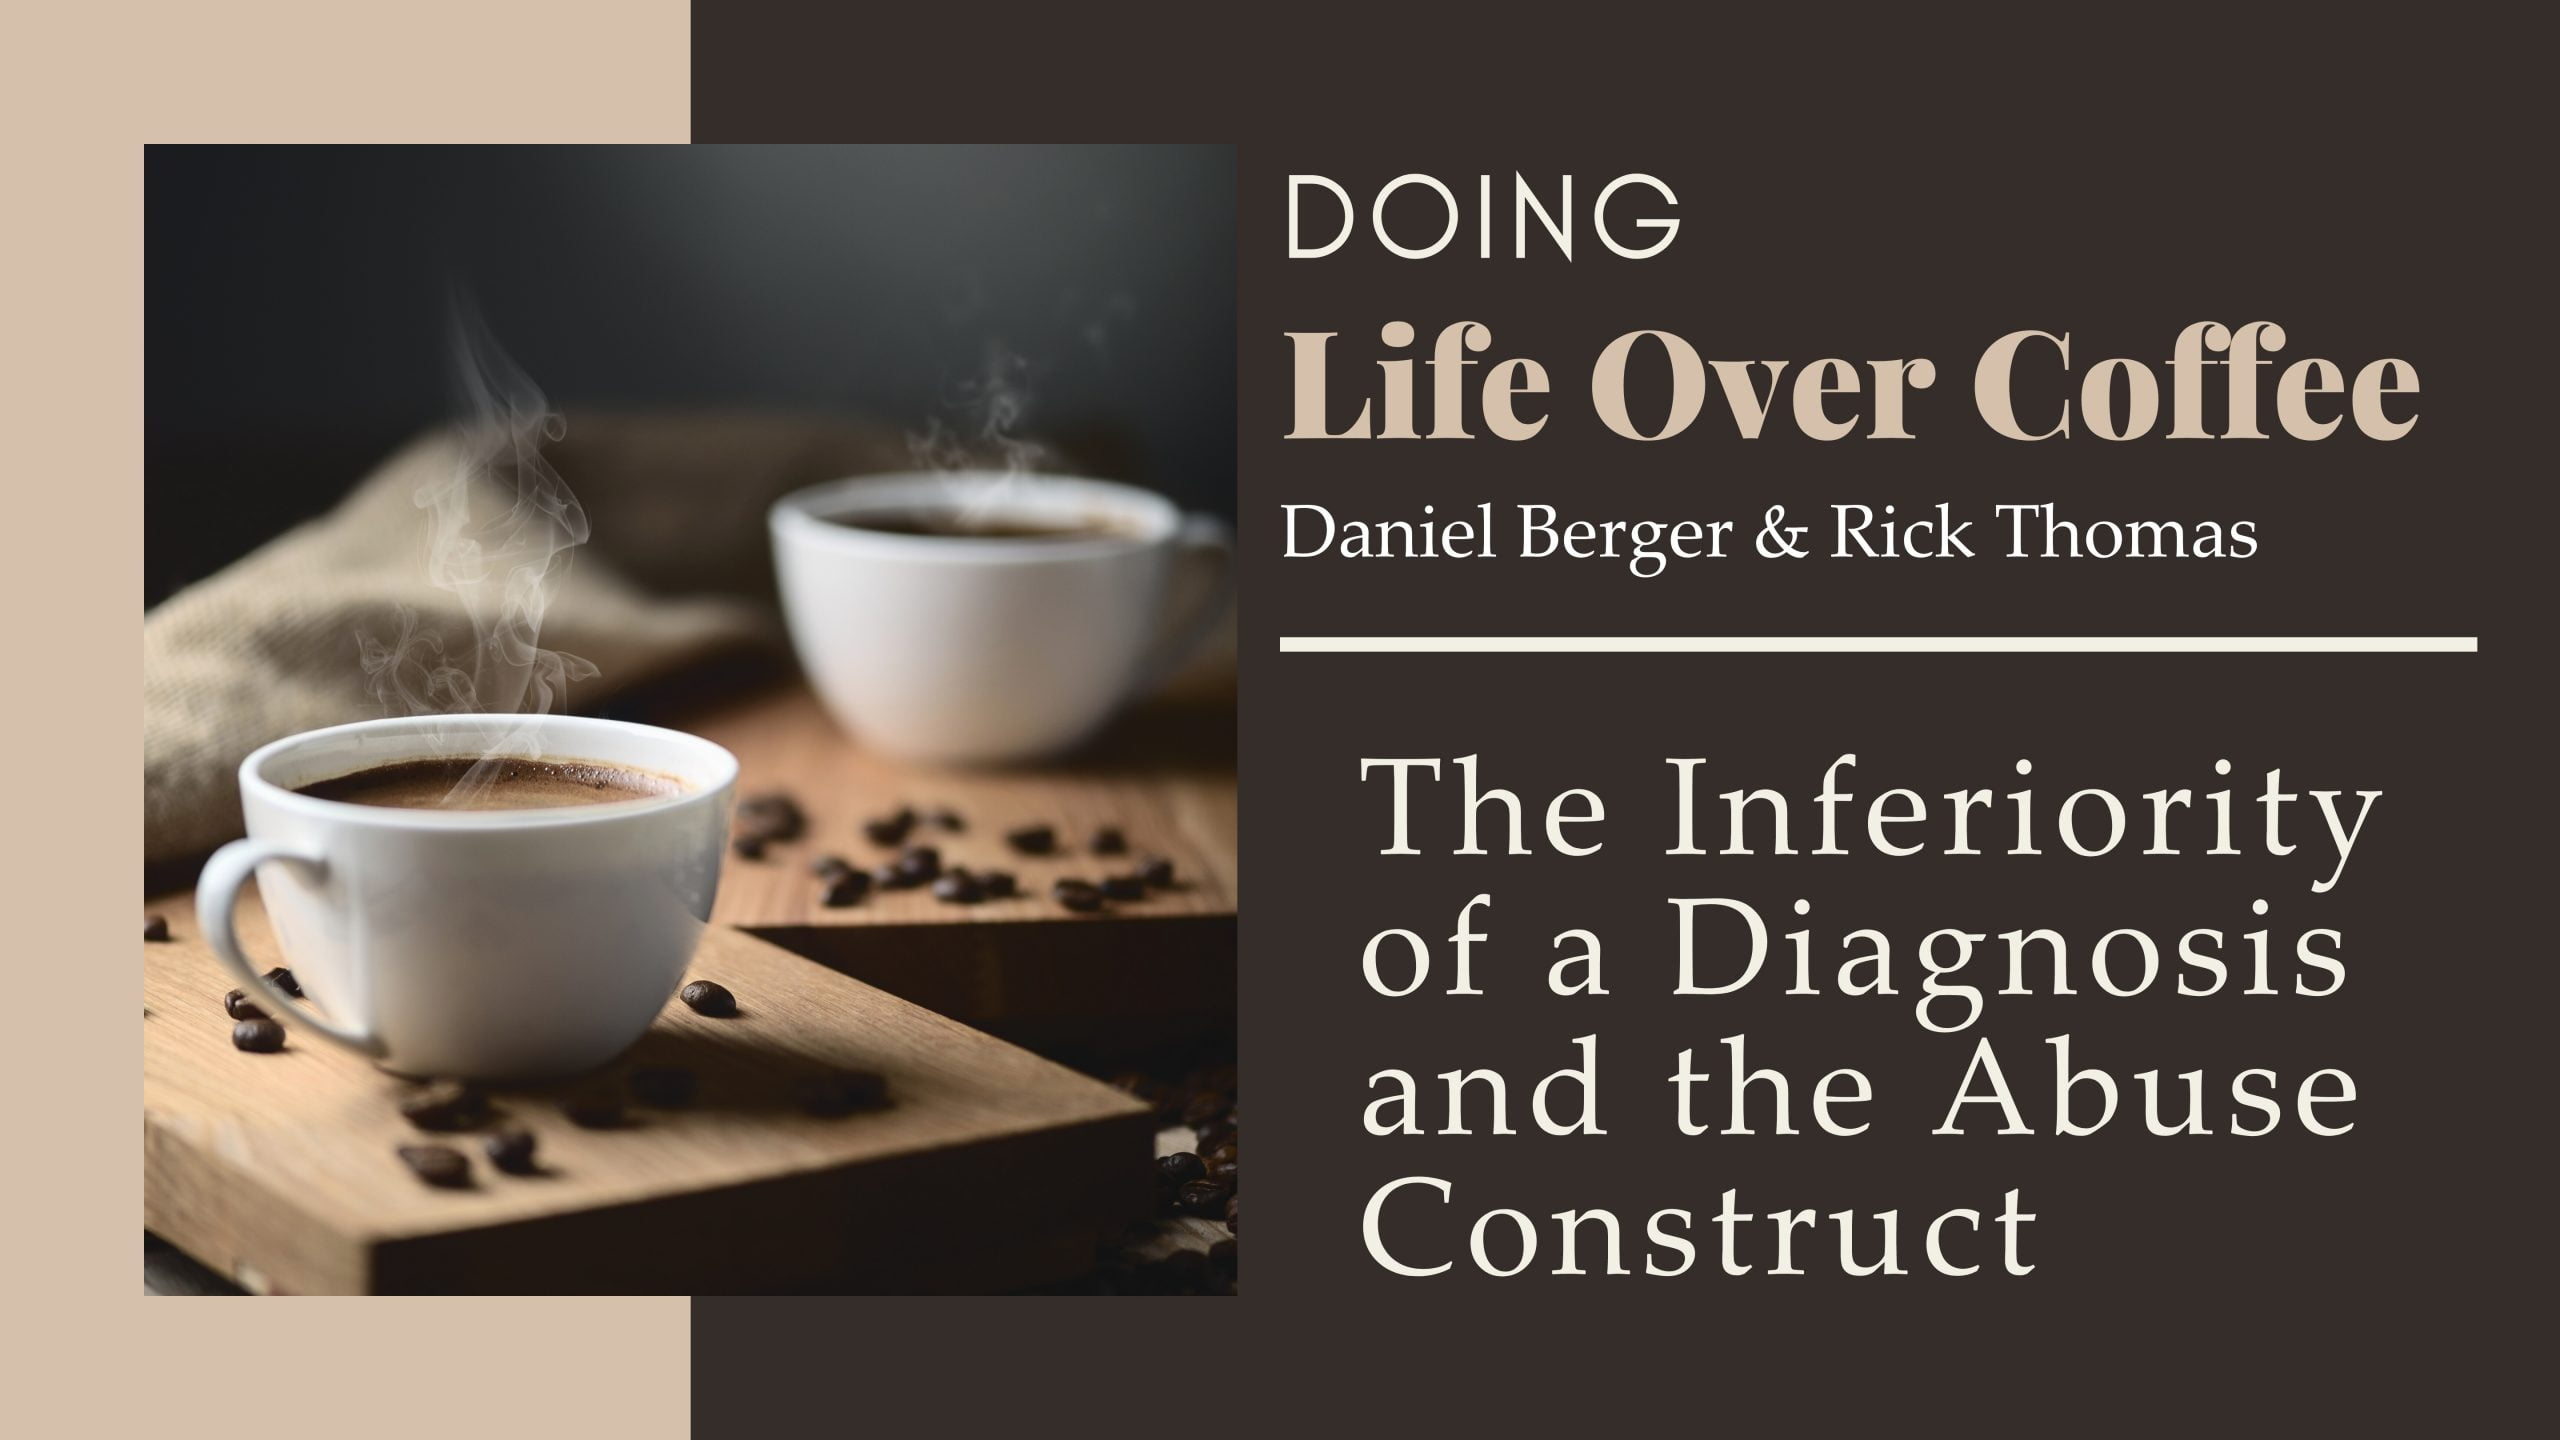 The Inferiority of a Diagnosis and the Abuse Construct